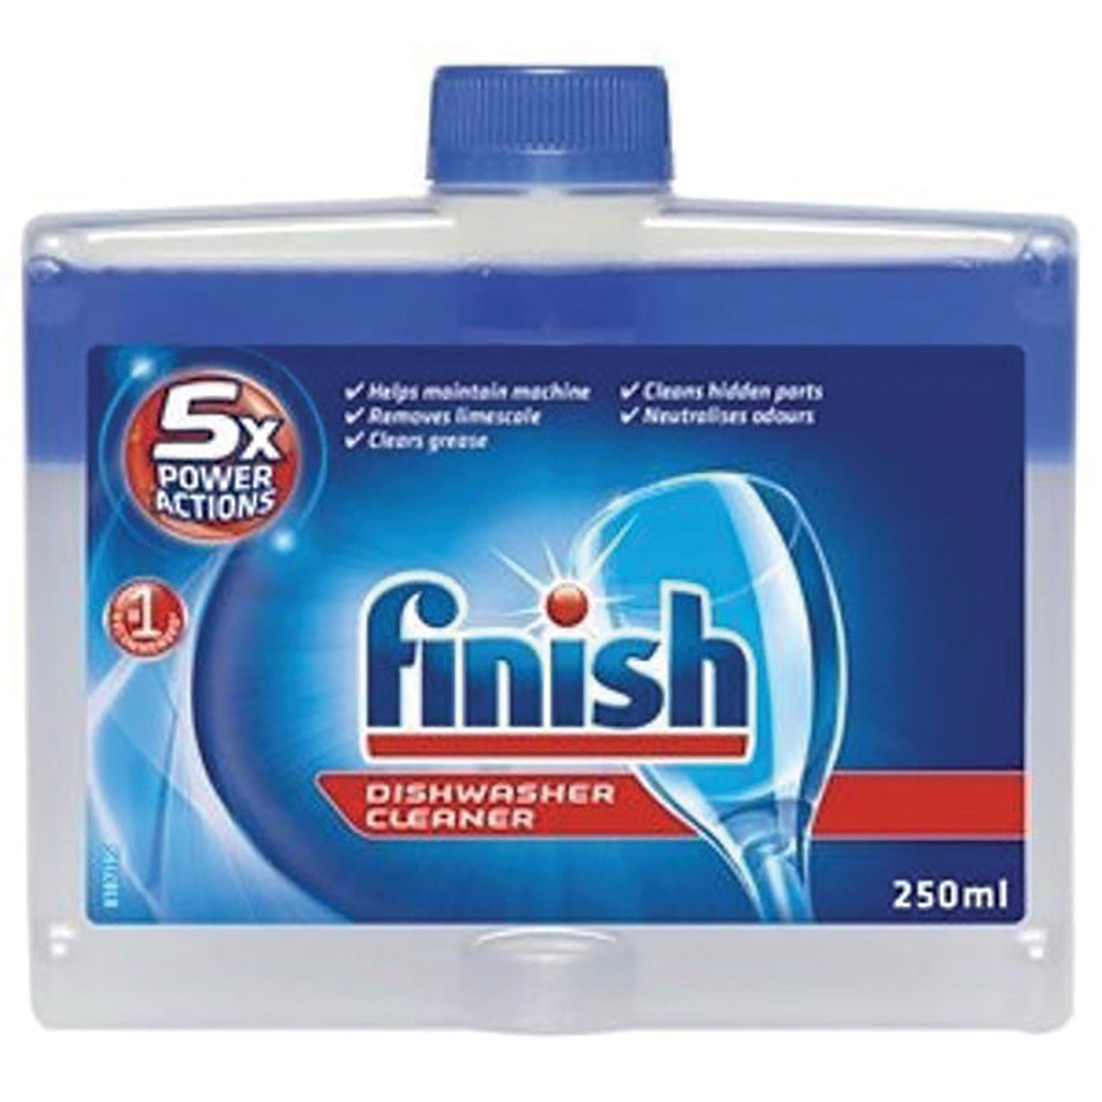 Dishwashing products Finish Dishwasher Cleaner Liquid 250ml Ref 153850